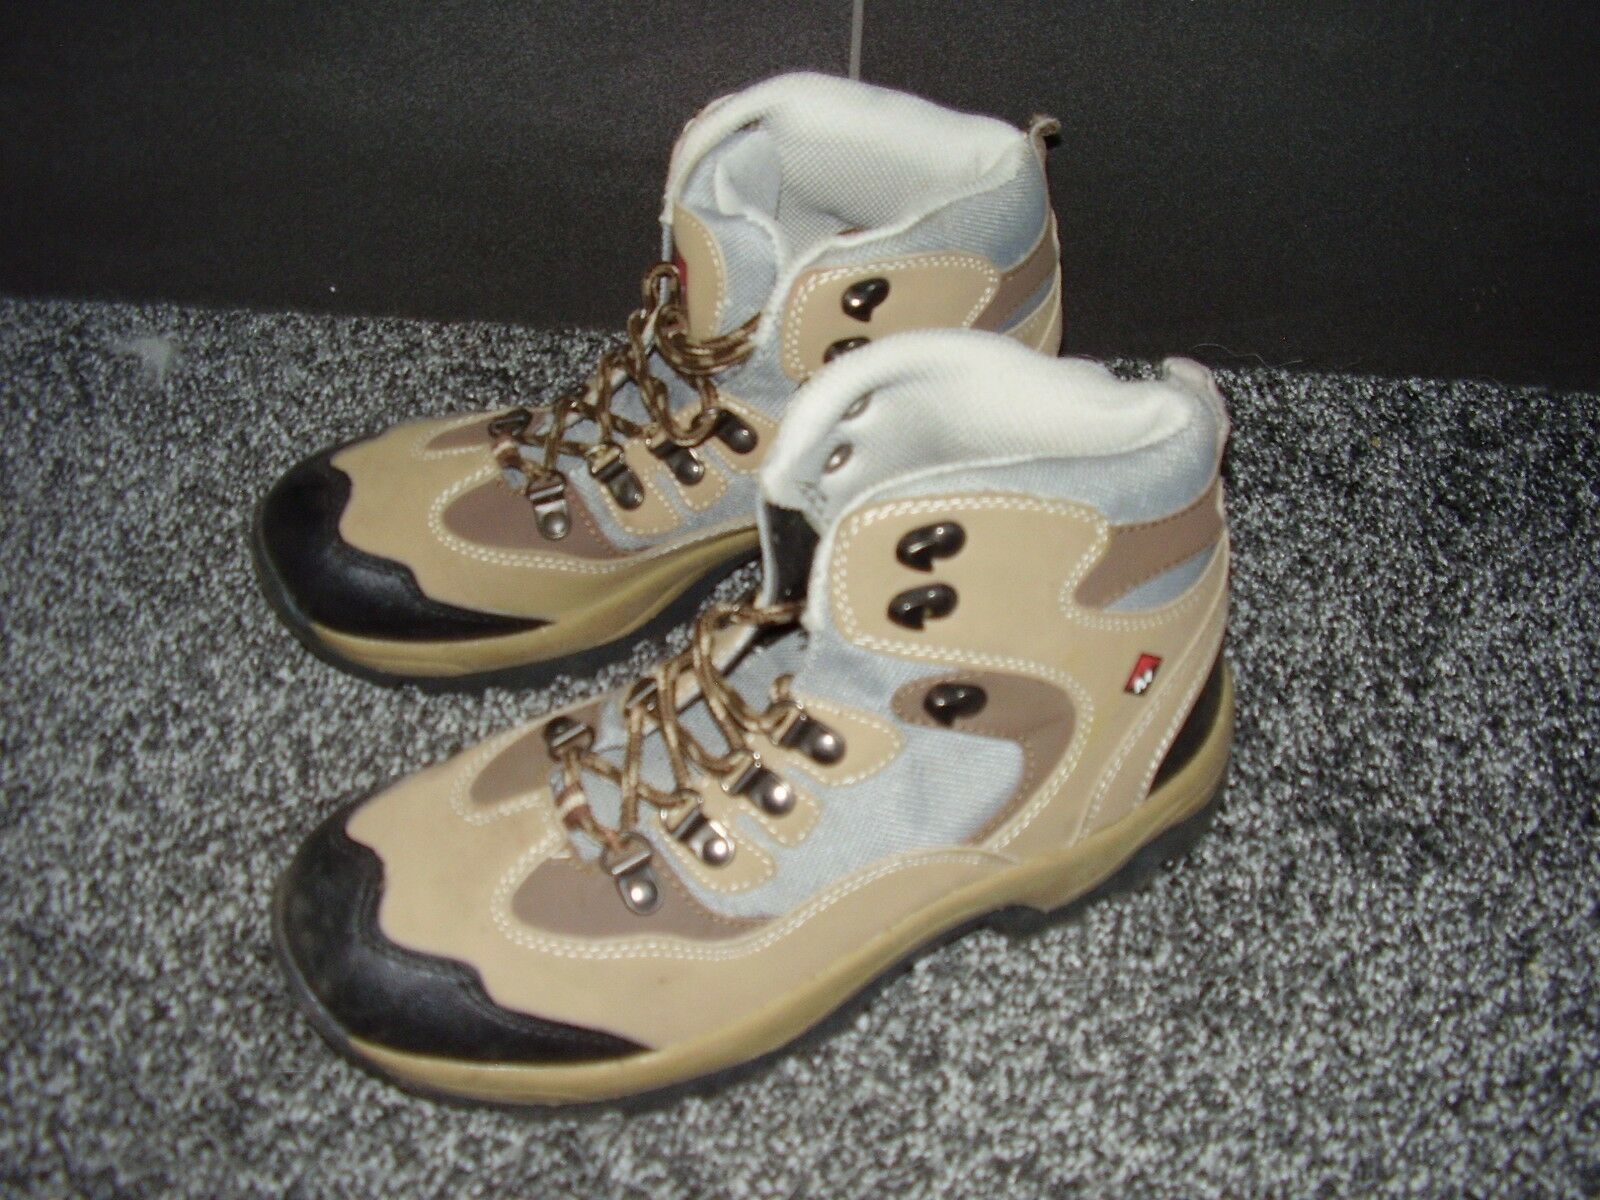 Mounty Damenschuhe Hiking Stiefel Größe 6, only Excellent condition - only 6, worn once cd01d2